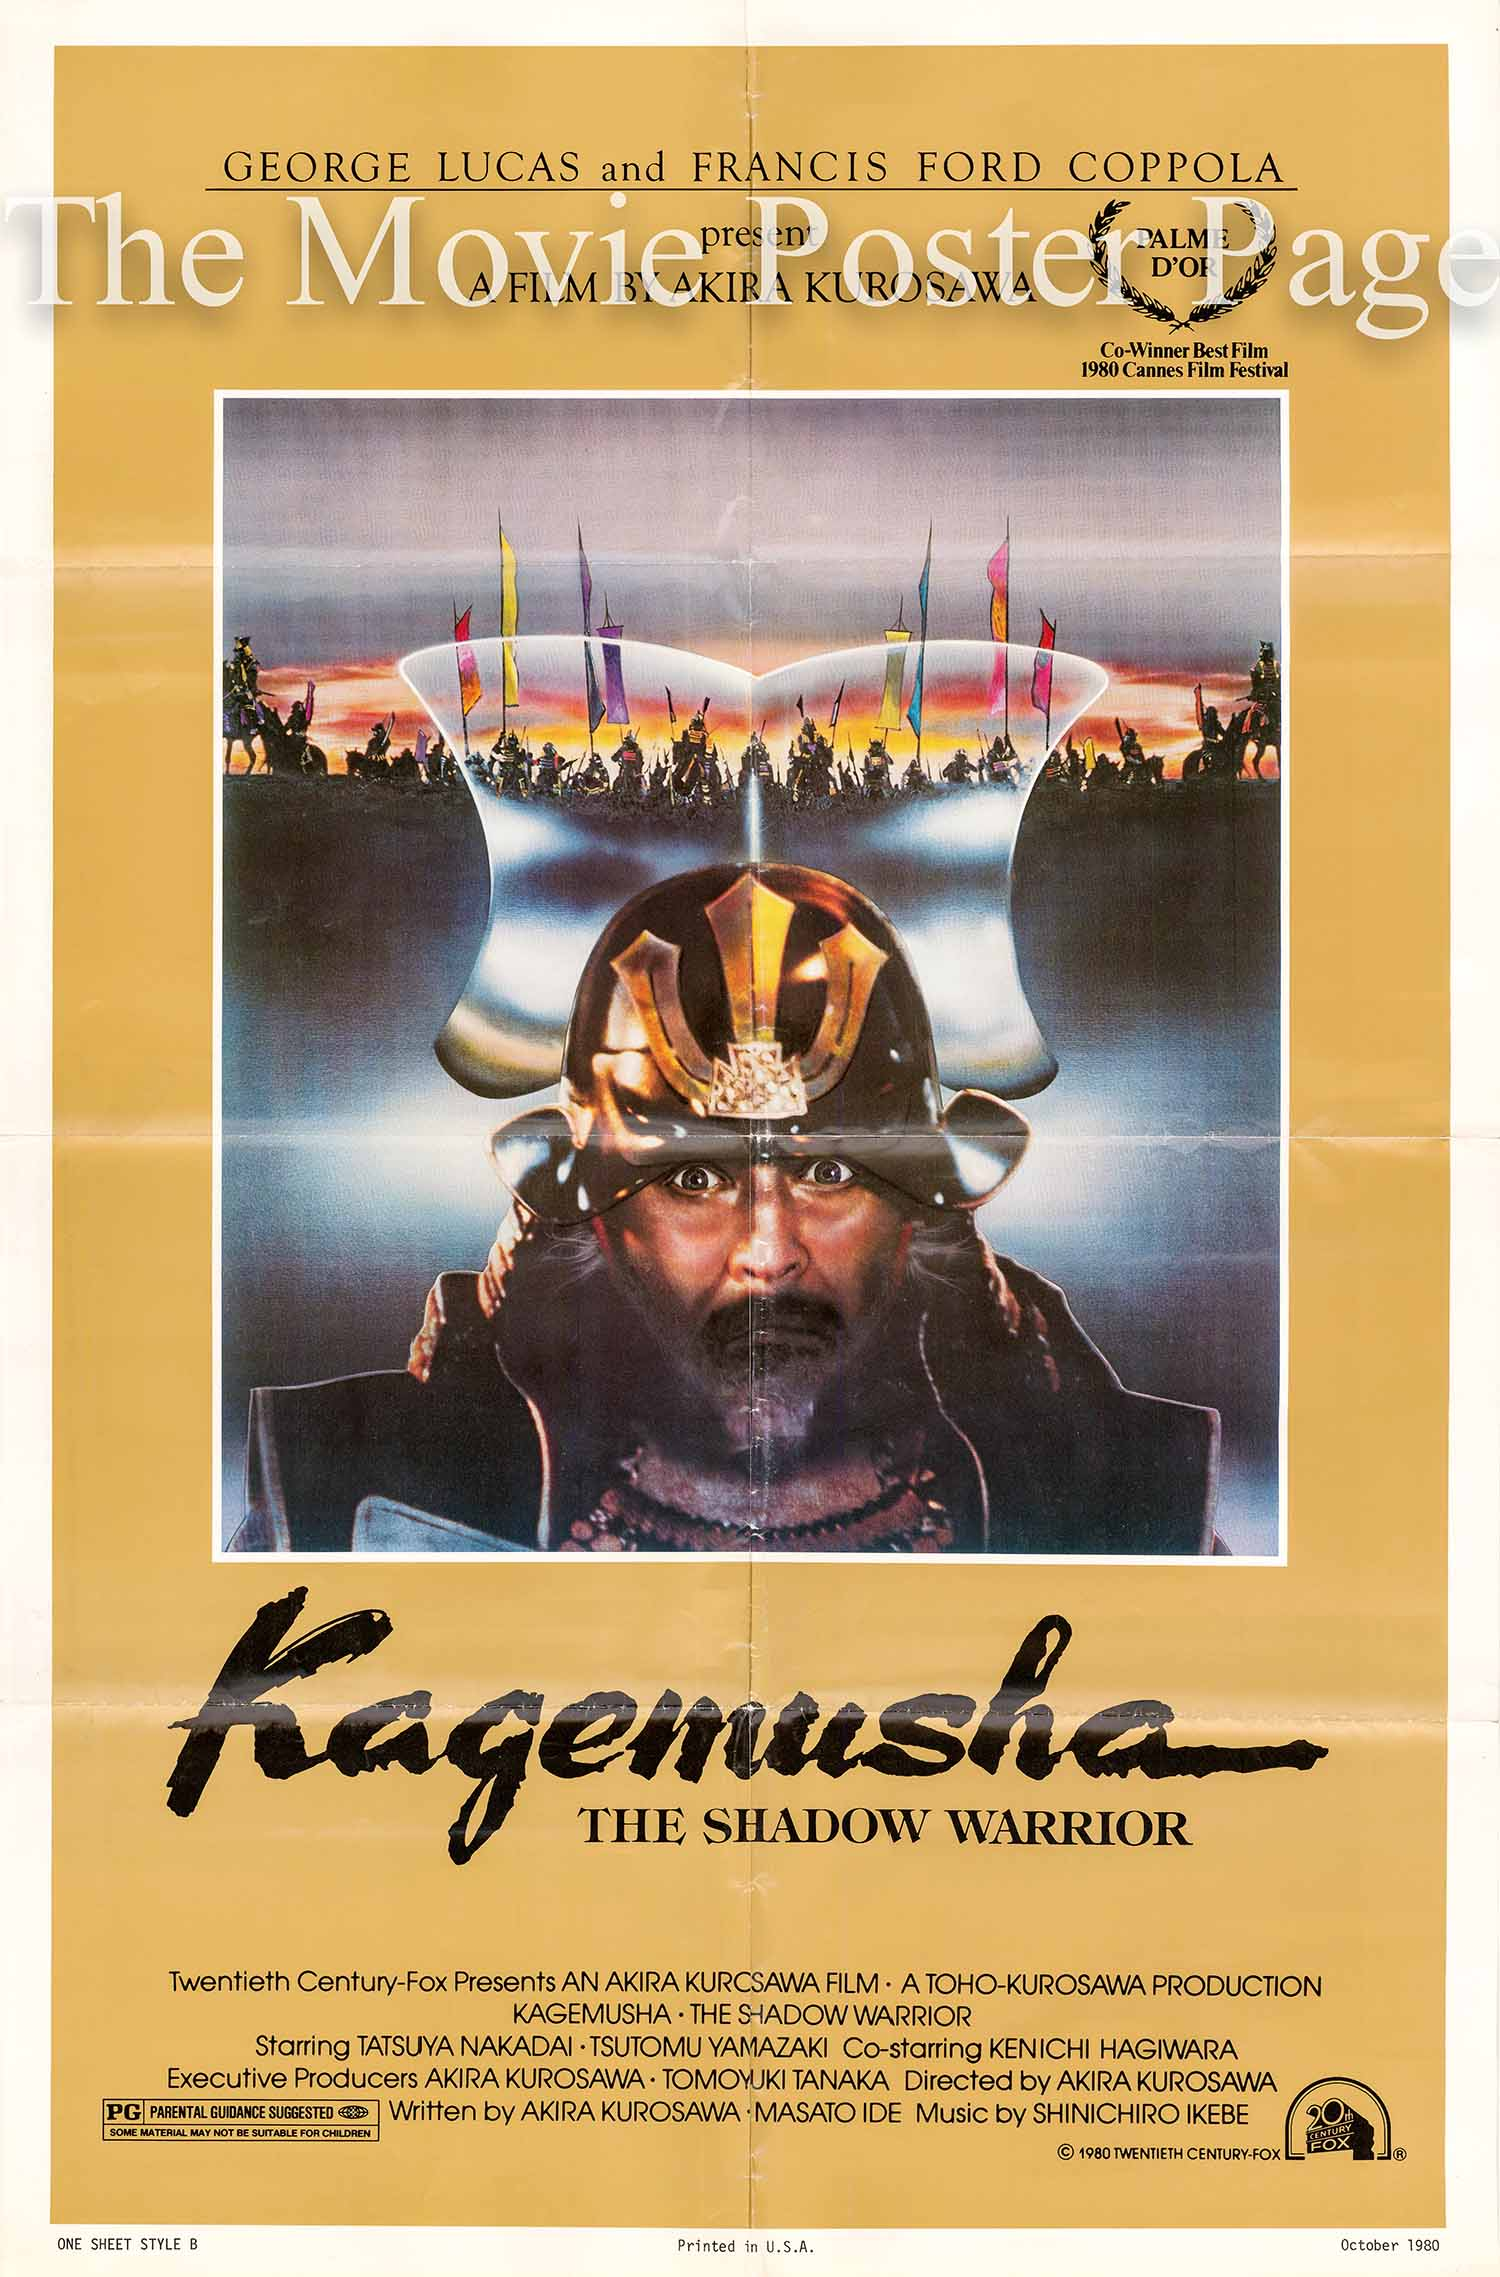 Pictured is a US one-sheet promotional poster for the 1980 Akira Kurosawa film Kagemusha starring Tatsuya Nakadai.